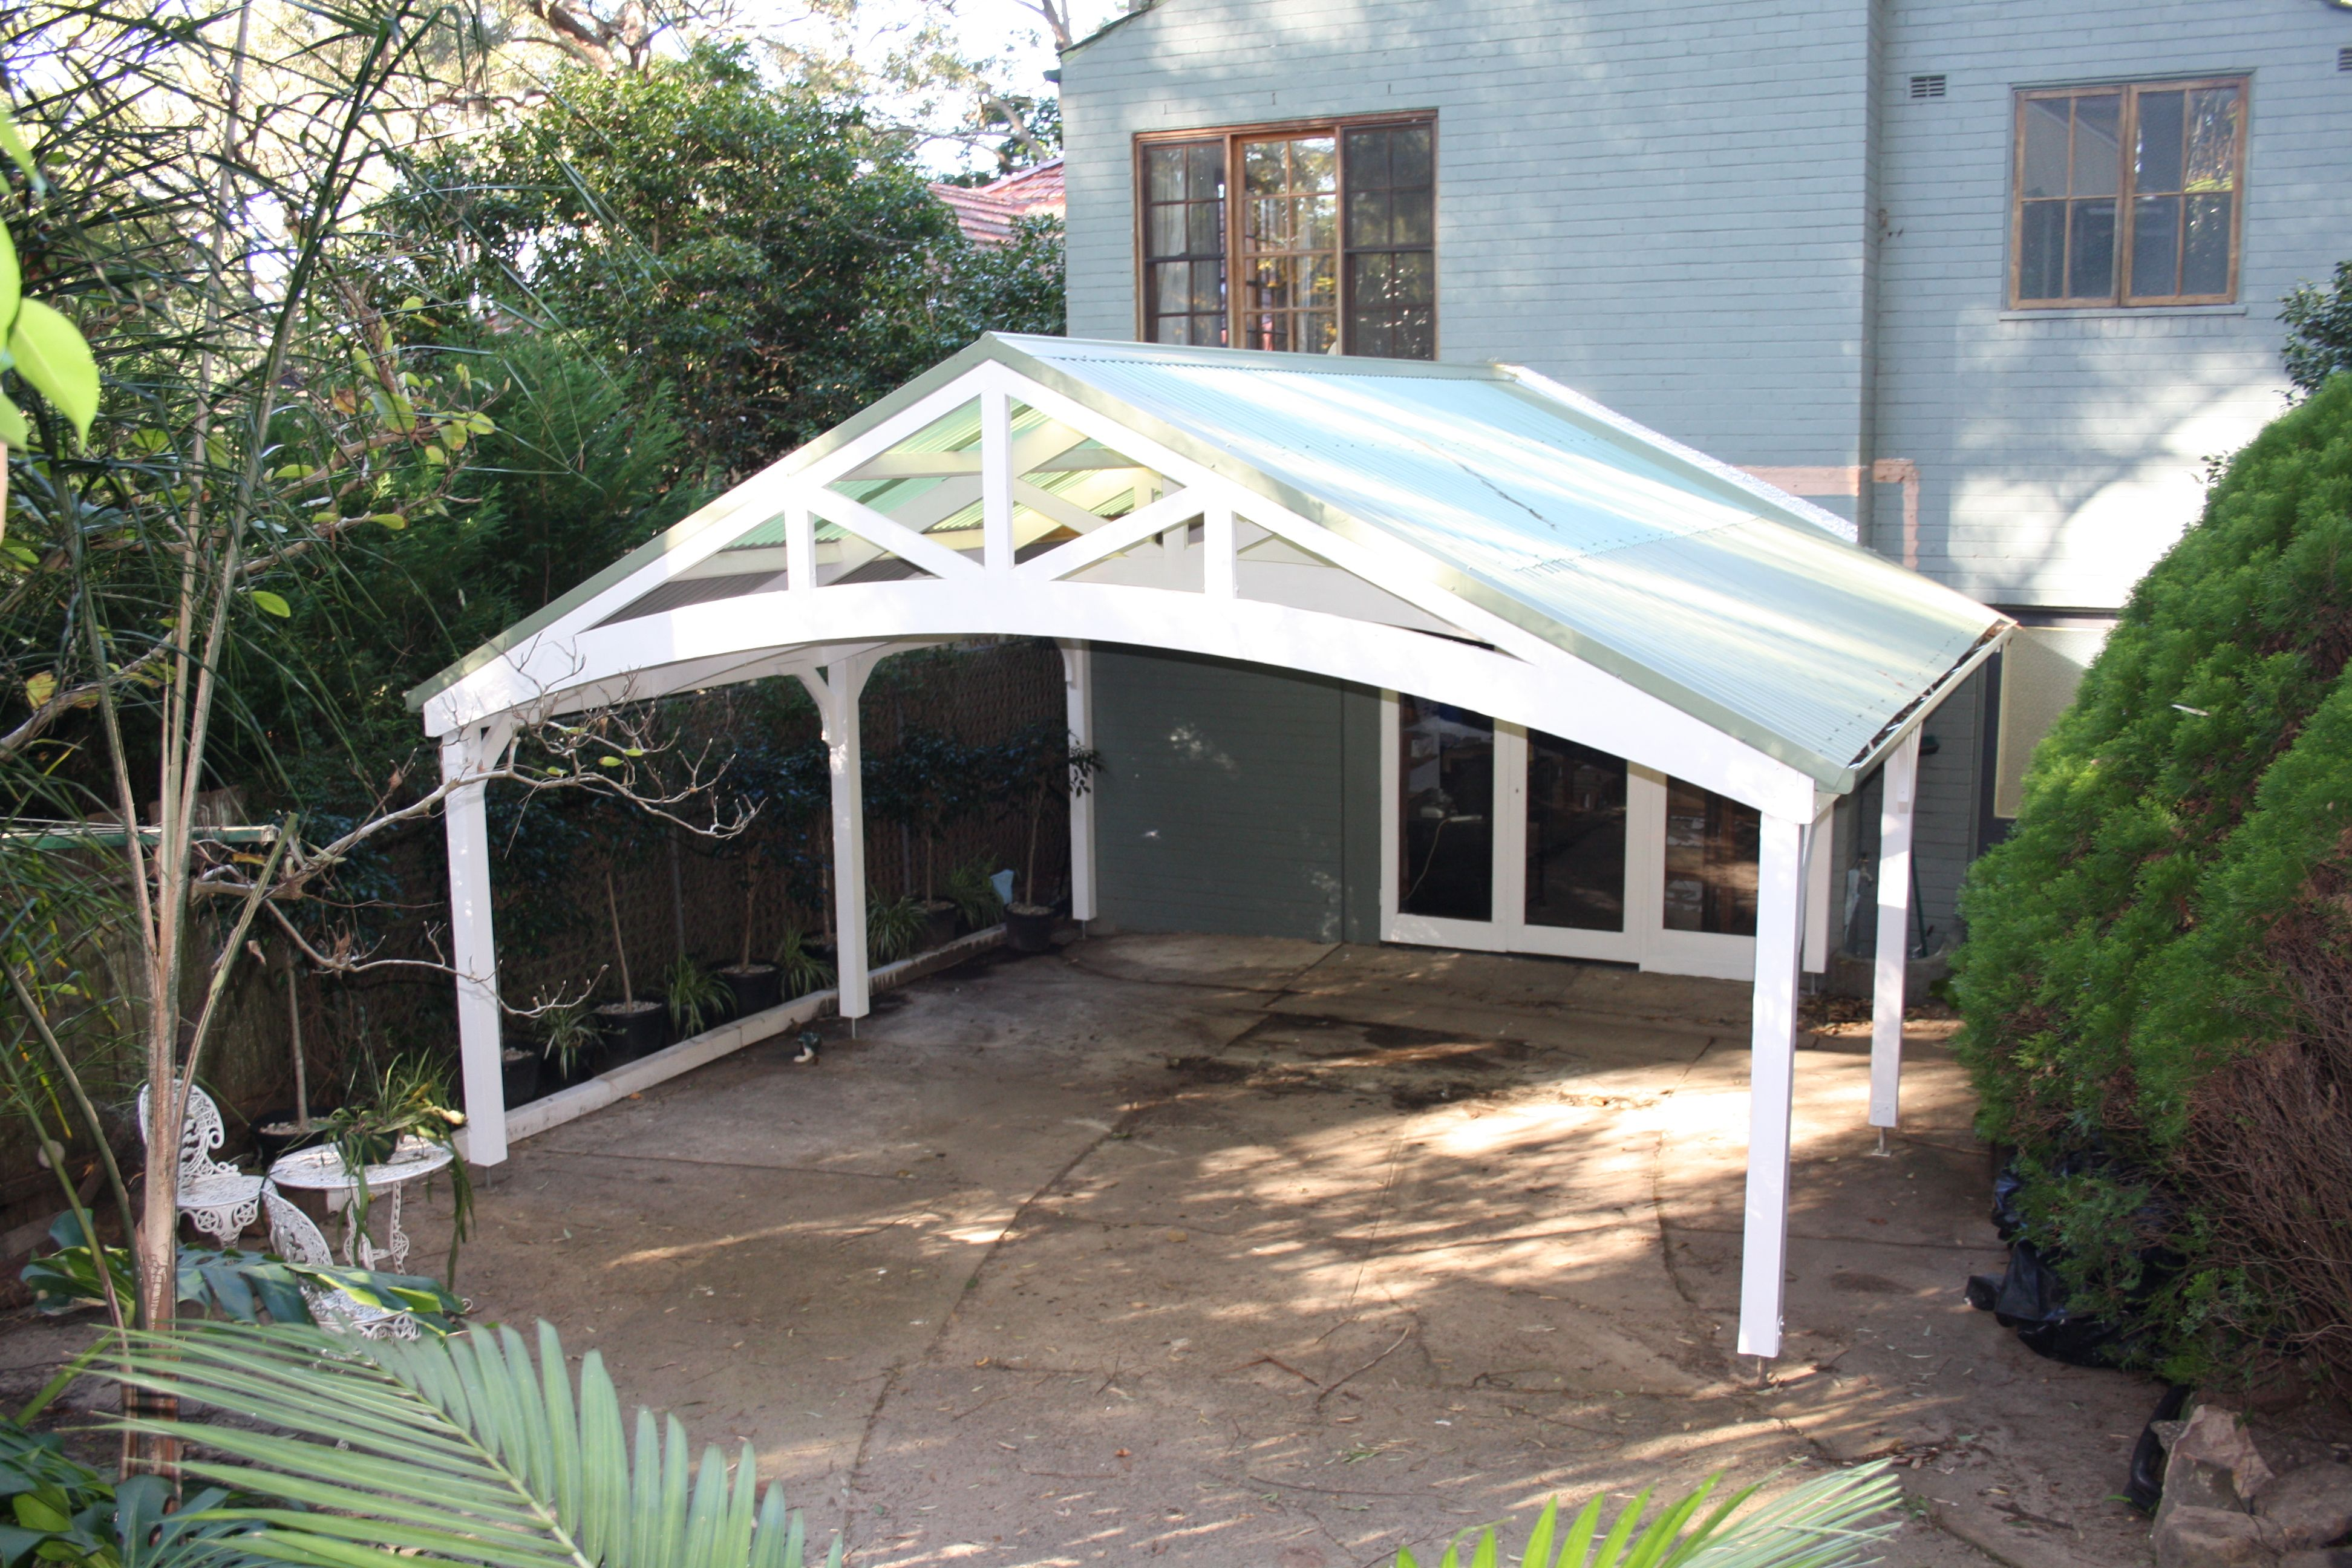 Carport in front of a garage